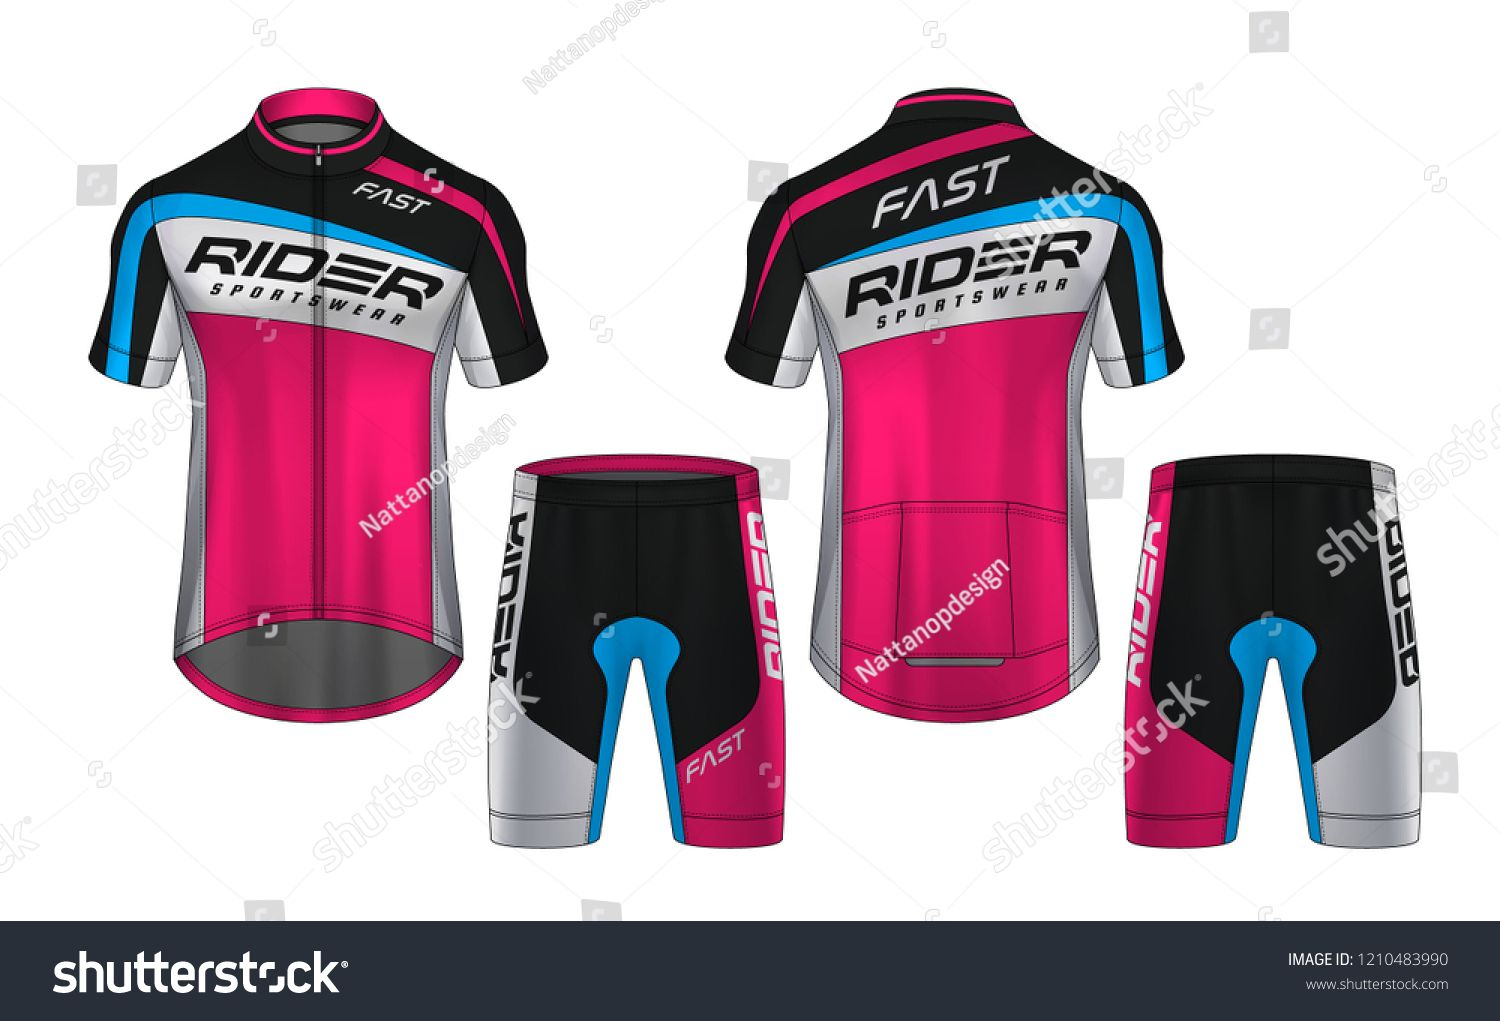 Download Cycling Jerseys Mockup T Shirt Sport Design Template Uniform For Bicycle Apparel